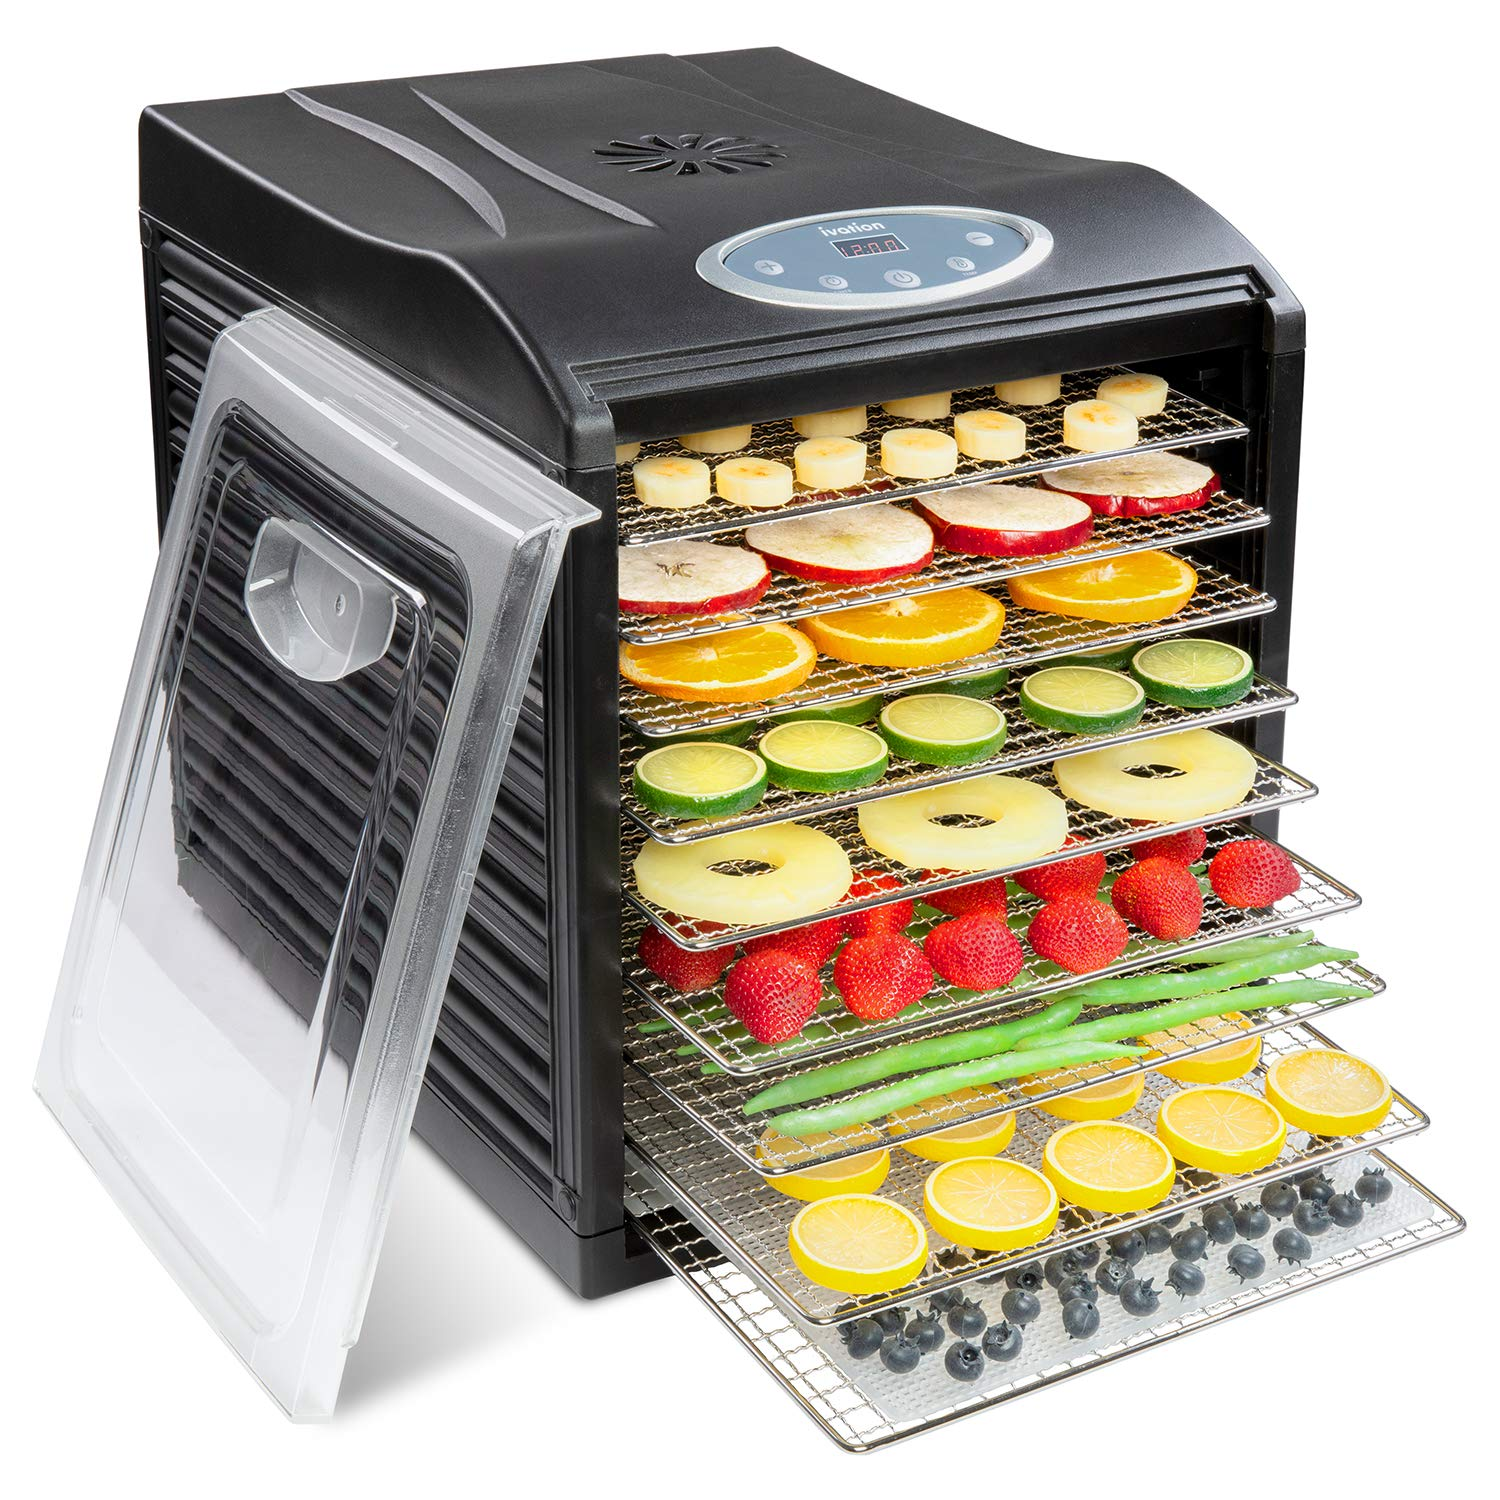 Ivation Stainless Steel Tray Electric Food Dehydrator Machine - 9 Trays - 600w - Digital Timer & Temperature Control with Auto Shutoff - 95F to 158F for Drying Beef Jerky, Fruits, Vegetables & Nuts, BPA Free